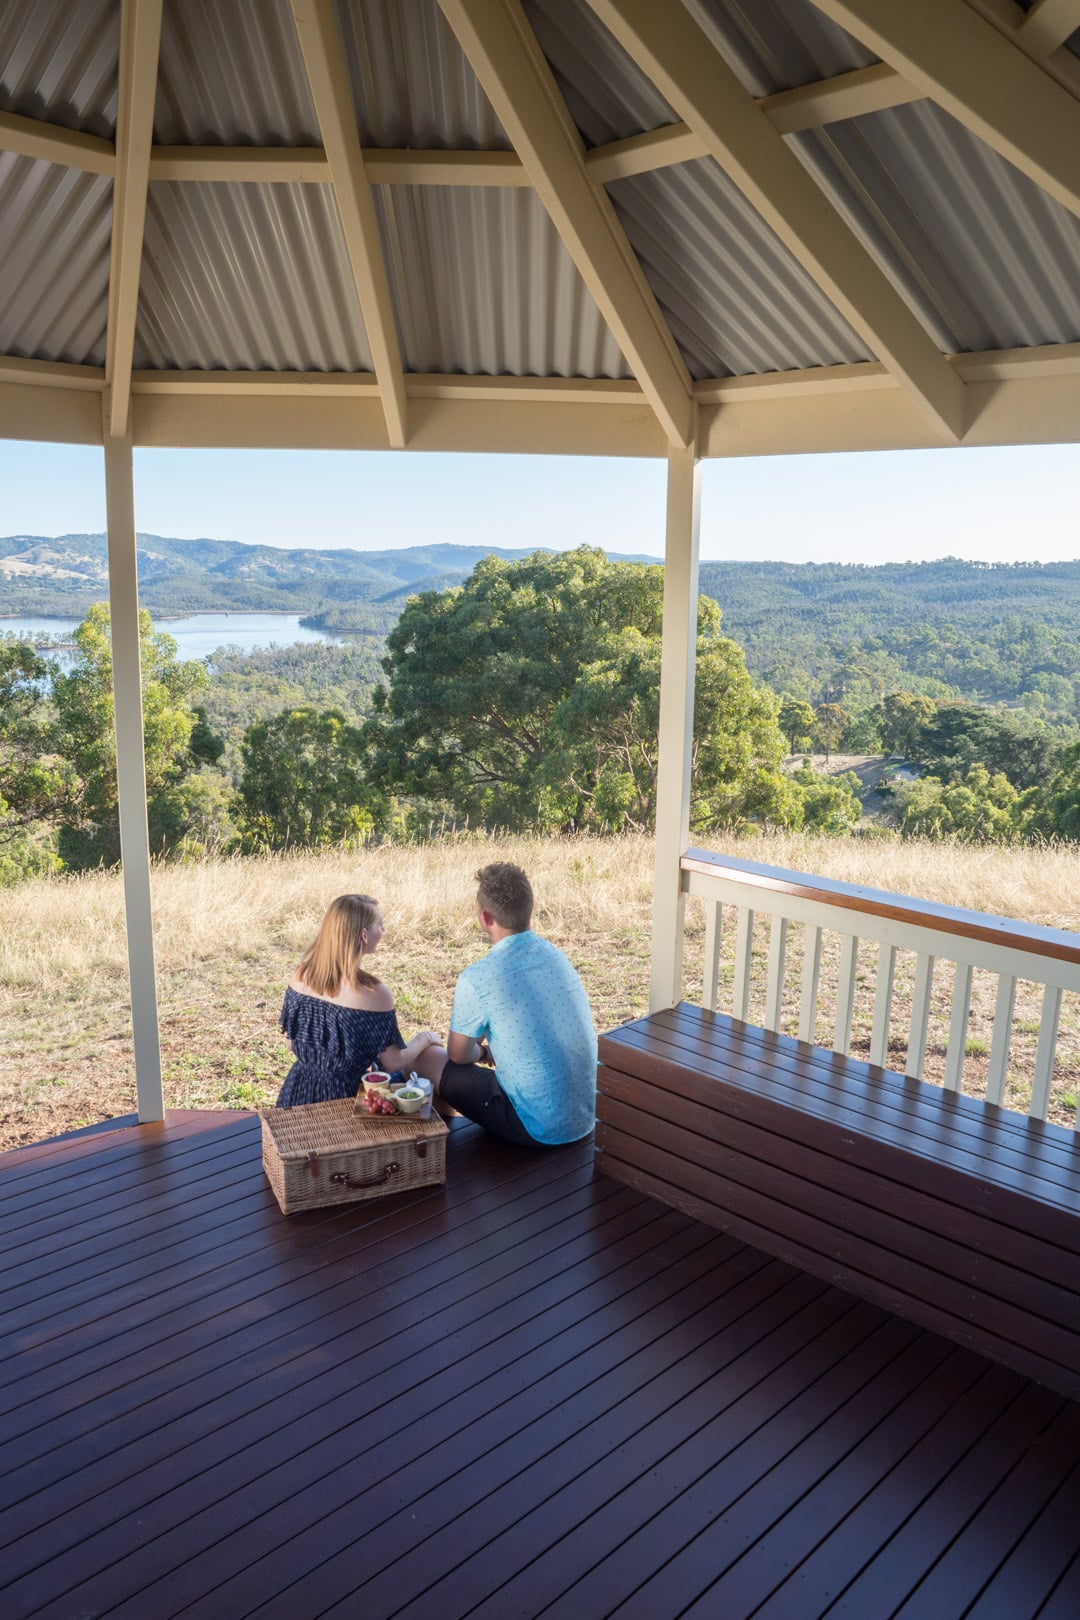 A helpful guide to buying a pergola or verandah - A gazebo will create the perfect spot for a picnic, Australian Outdoor Living.